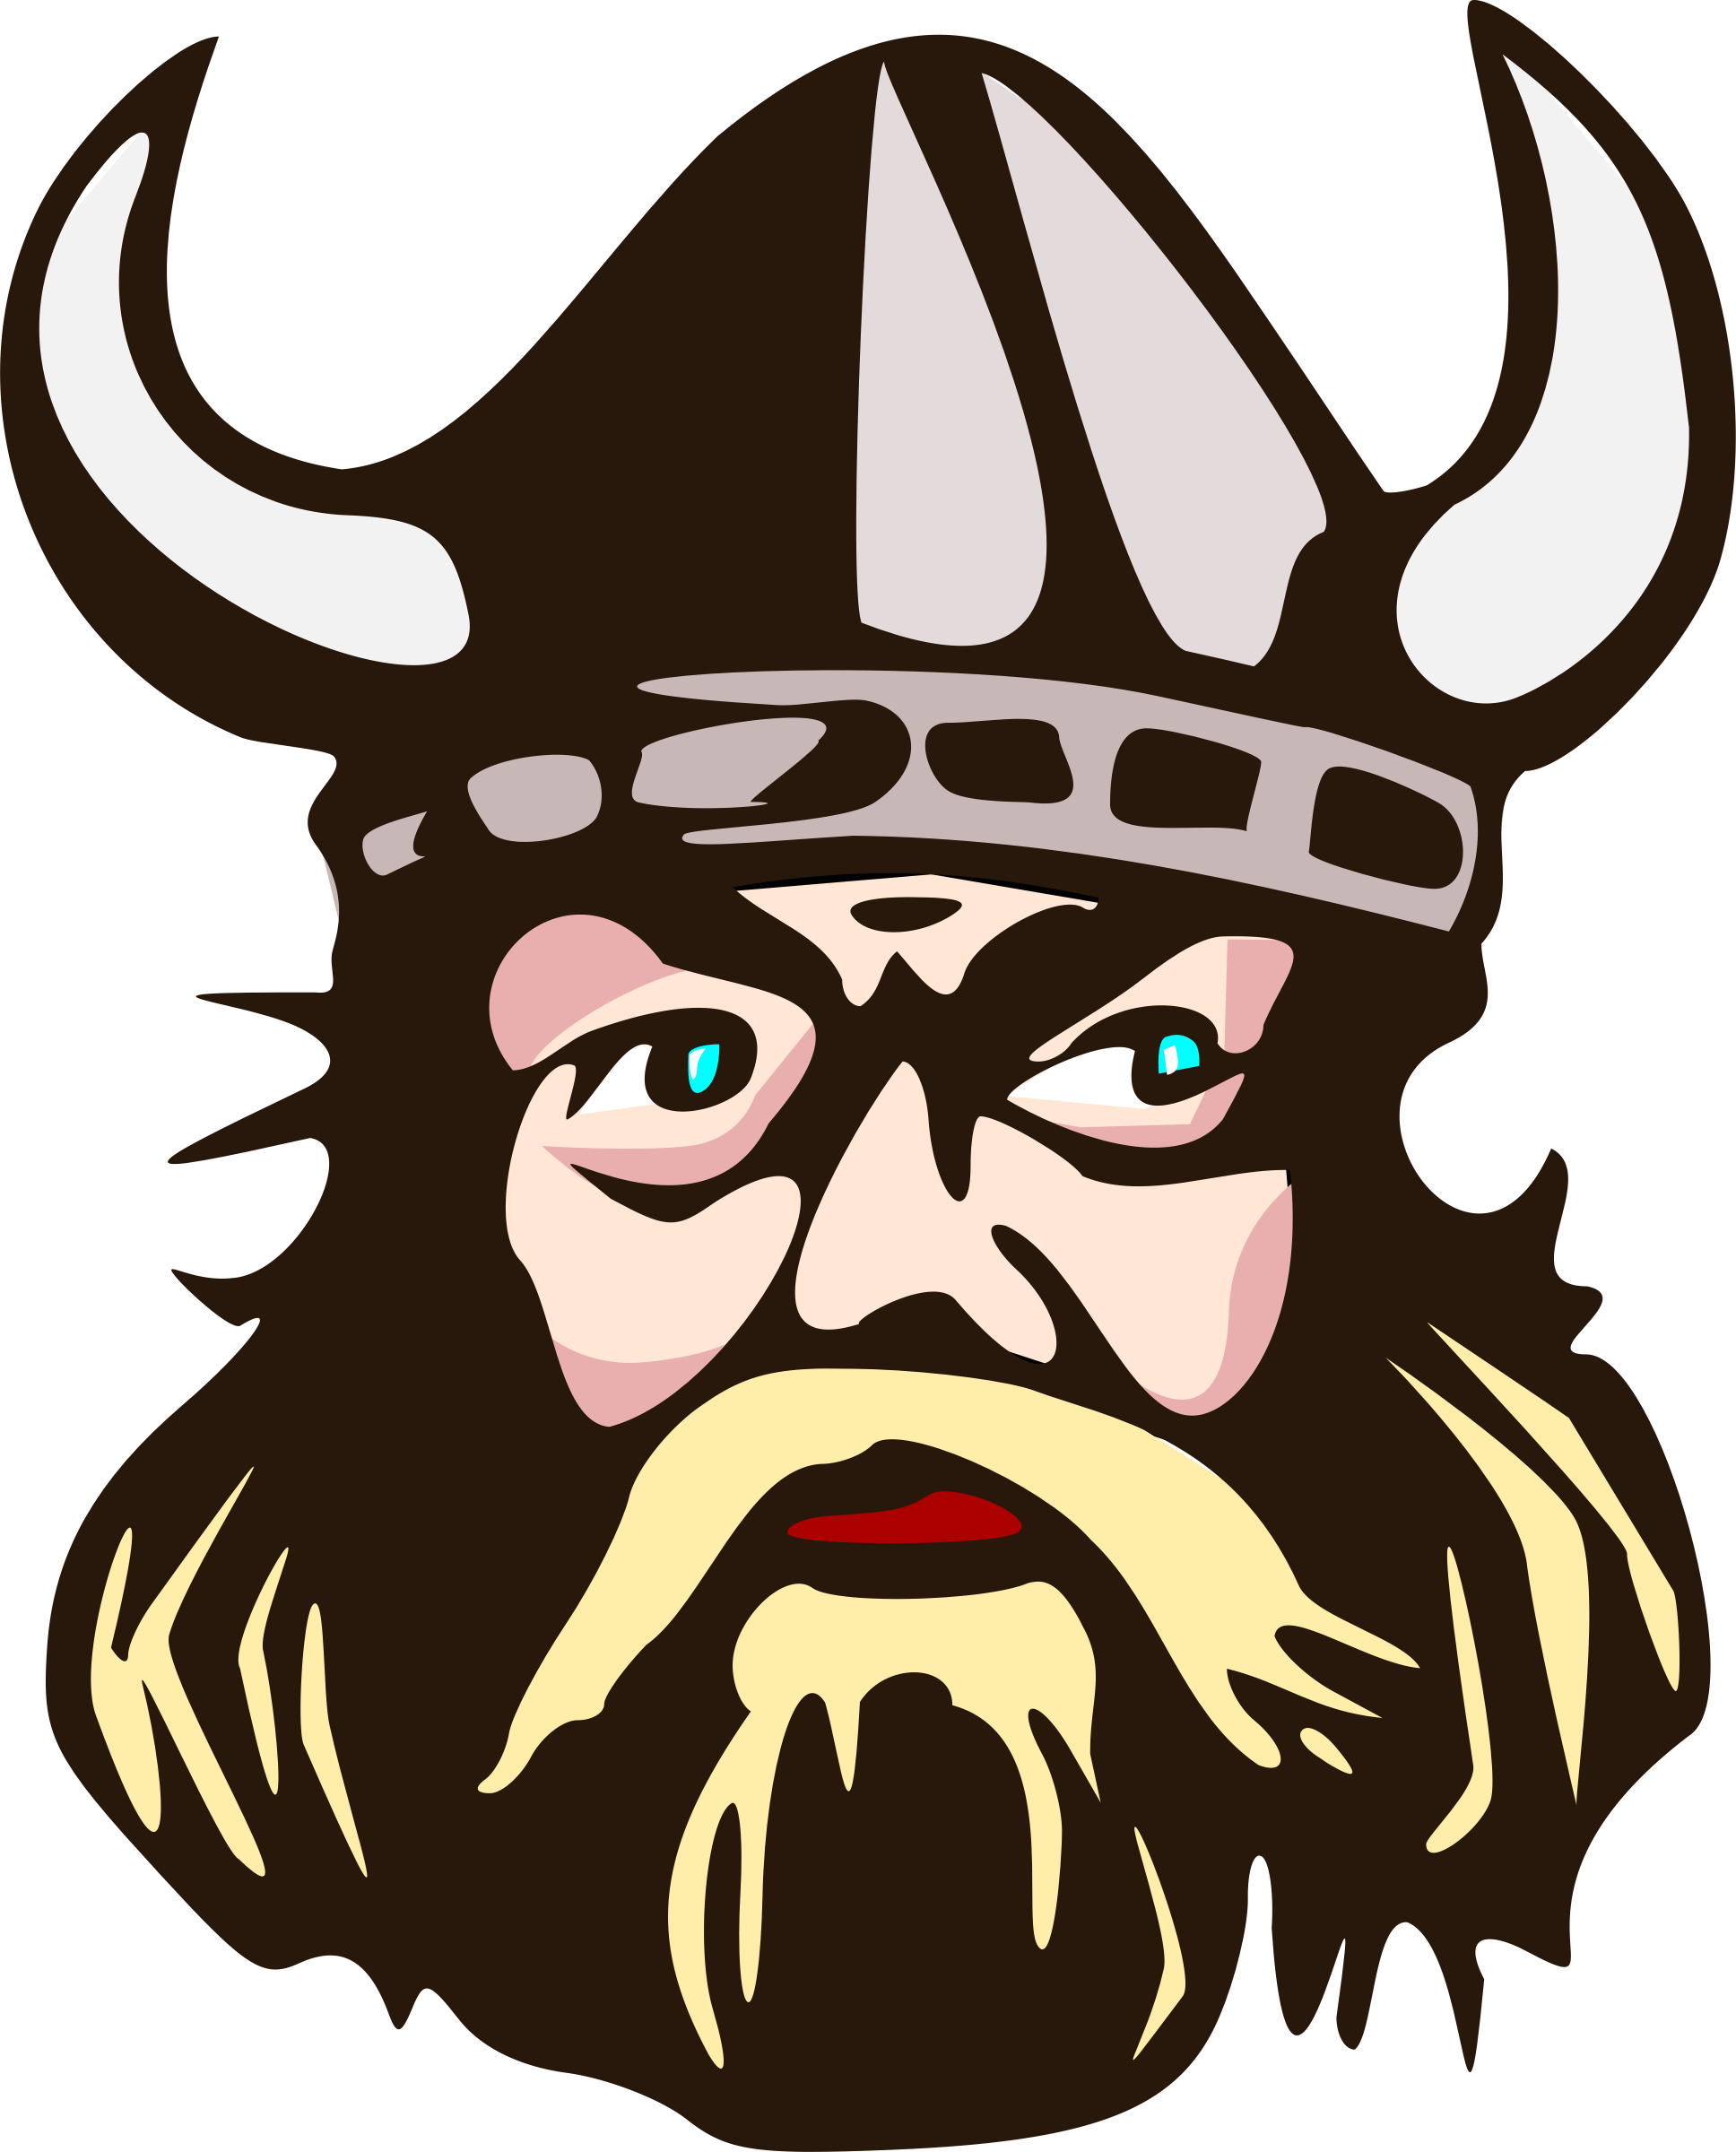 Warrior clipart viking man. Illustration transparent png stickpng